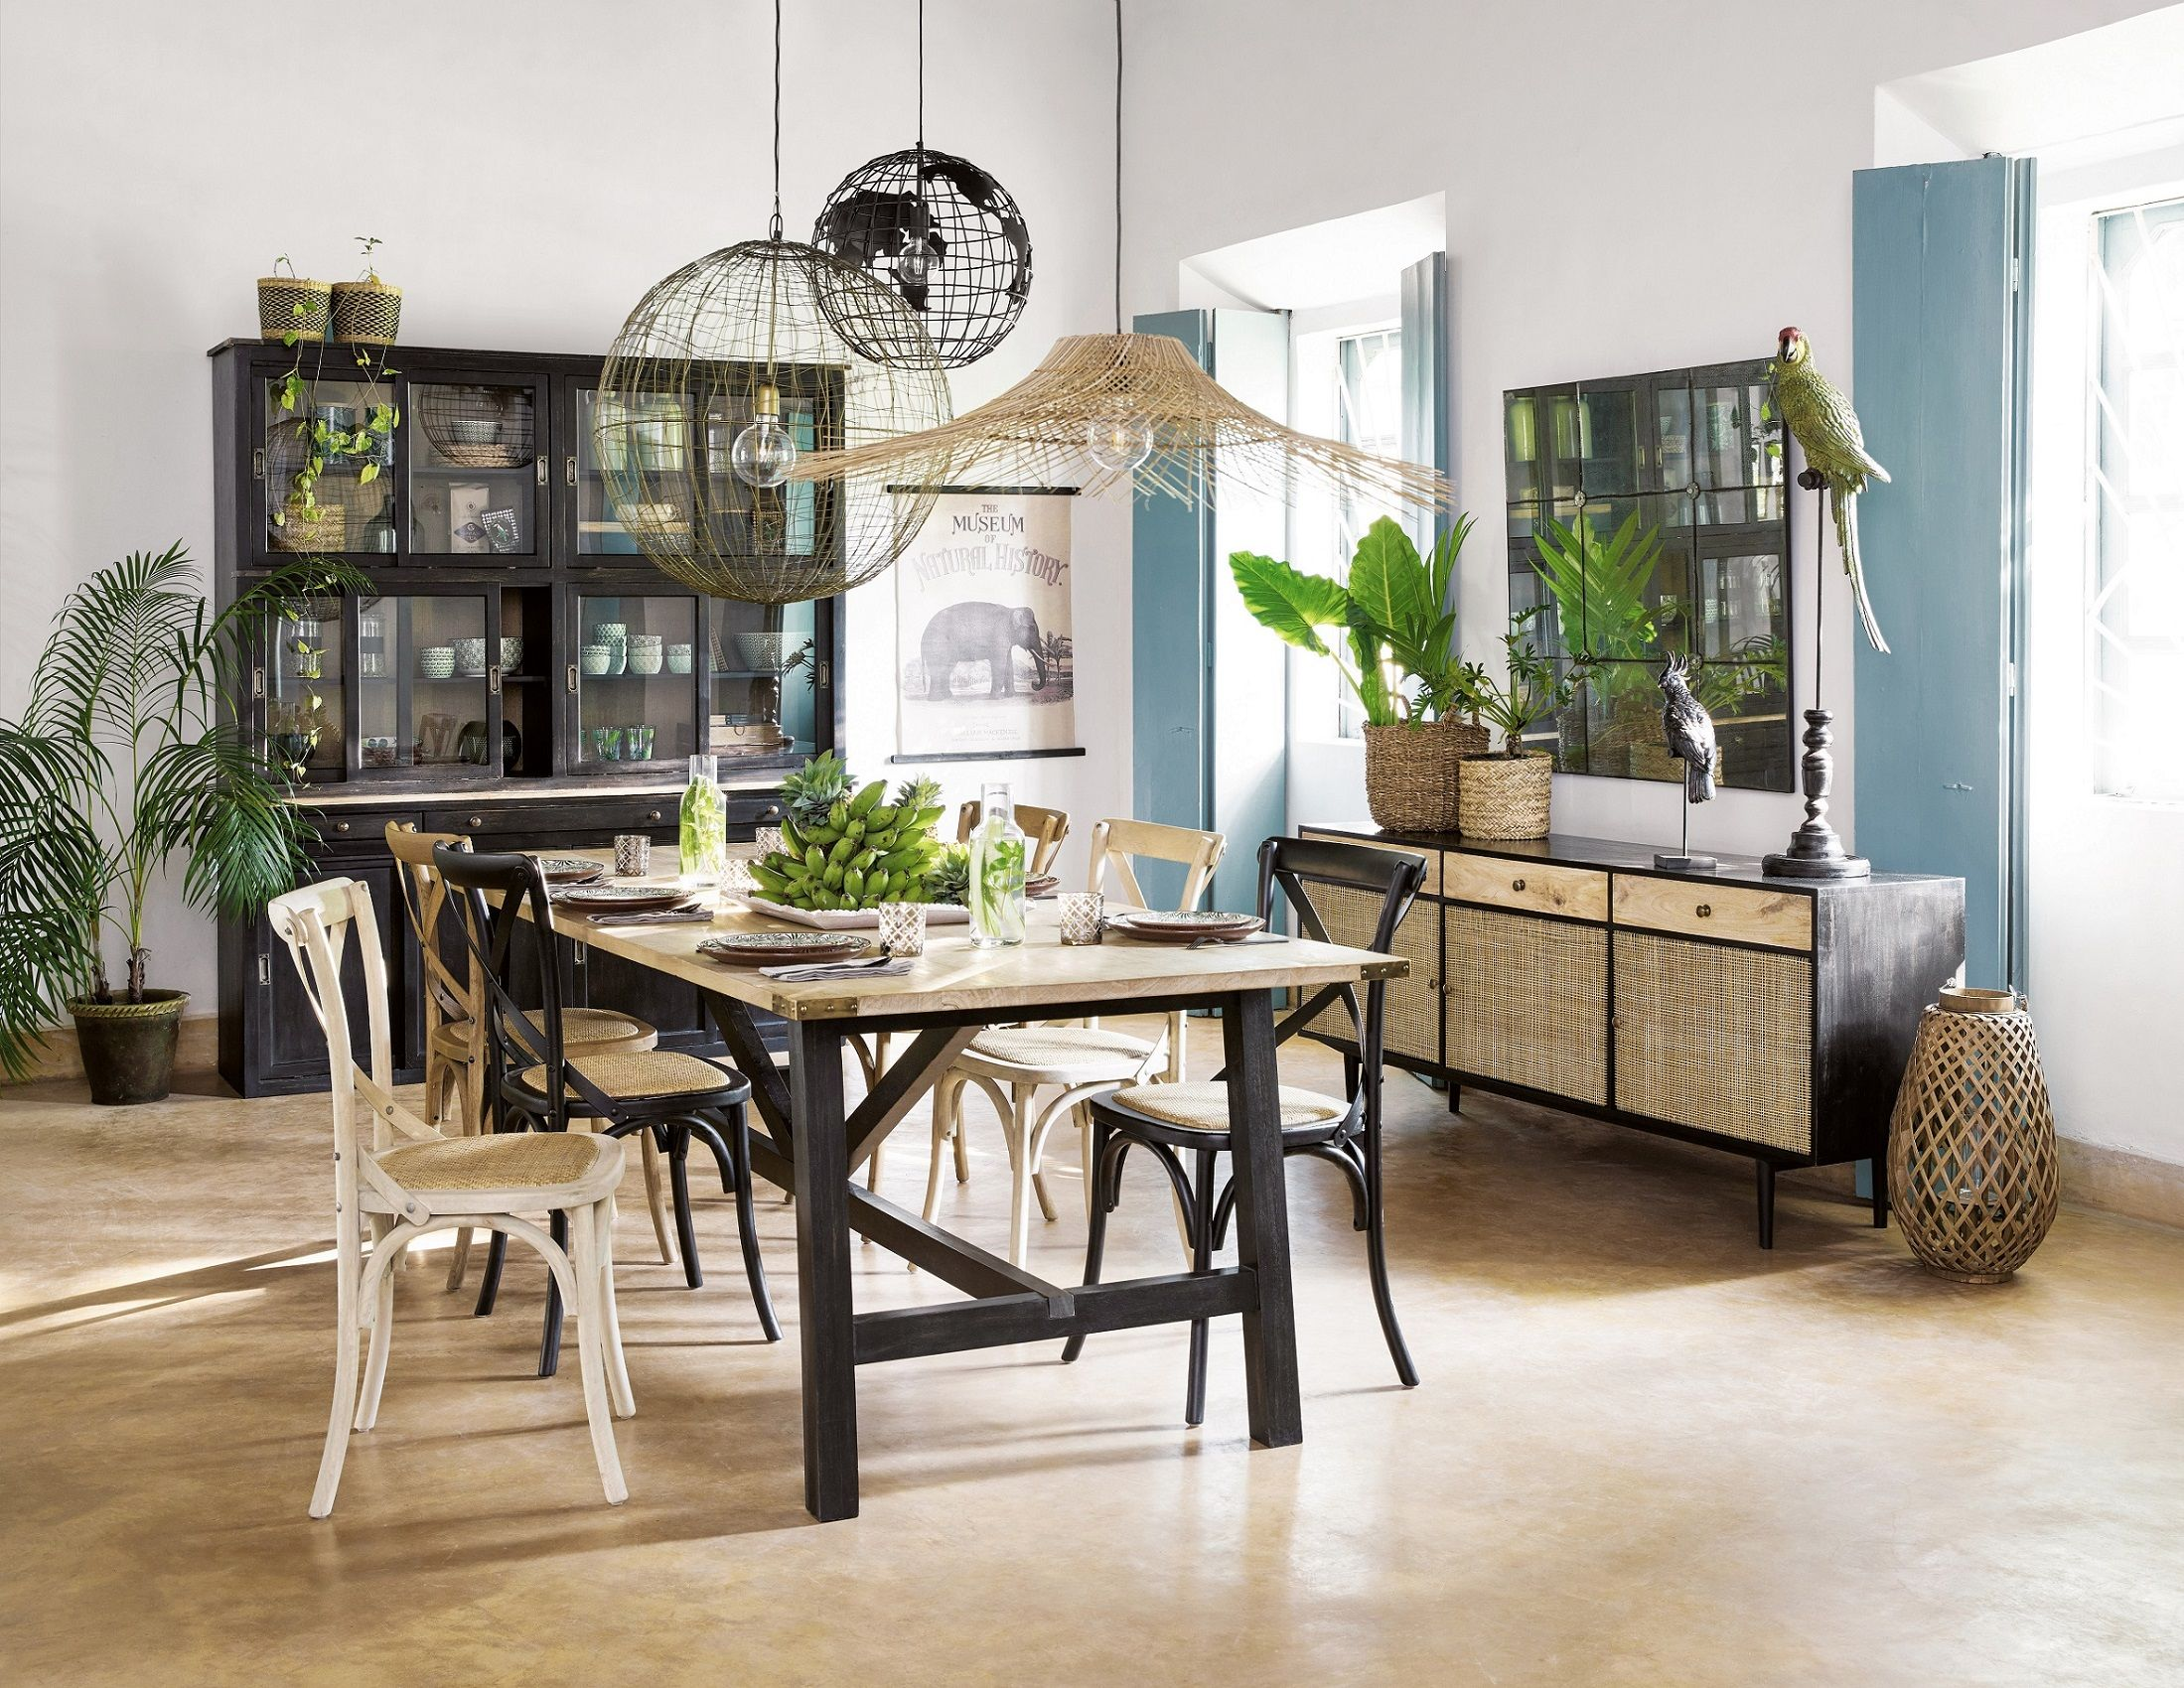 Maisons du Monde Is Opening Mini Shops In Debenhams stores Maisons du Monde interior   dining room